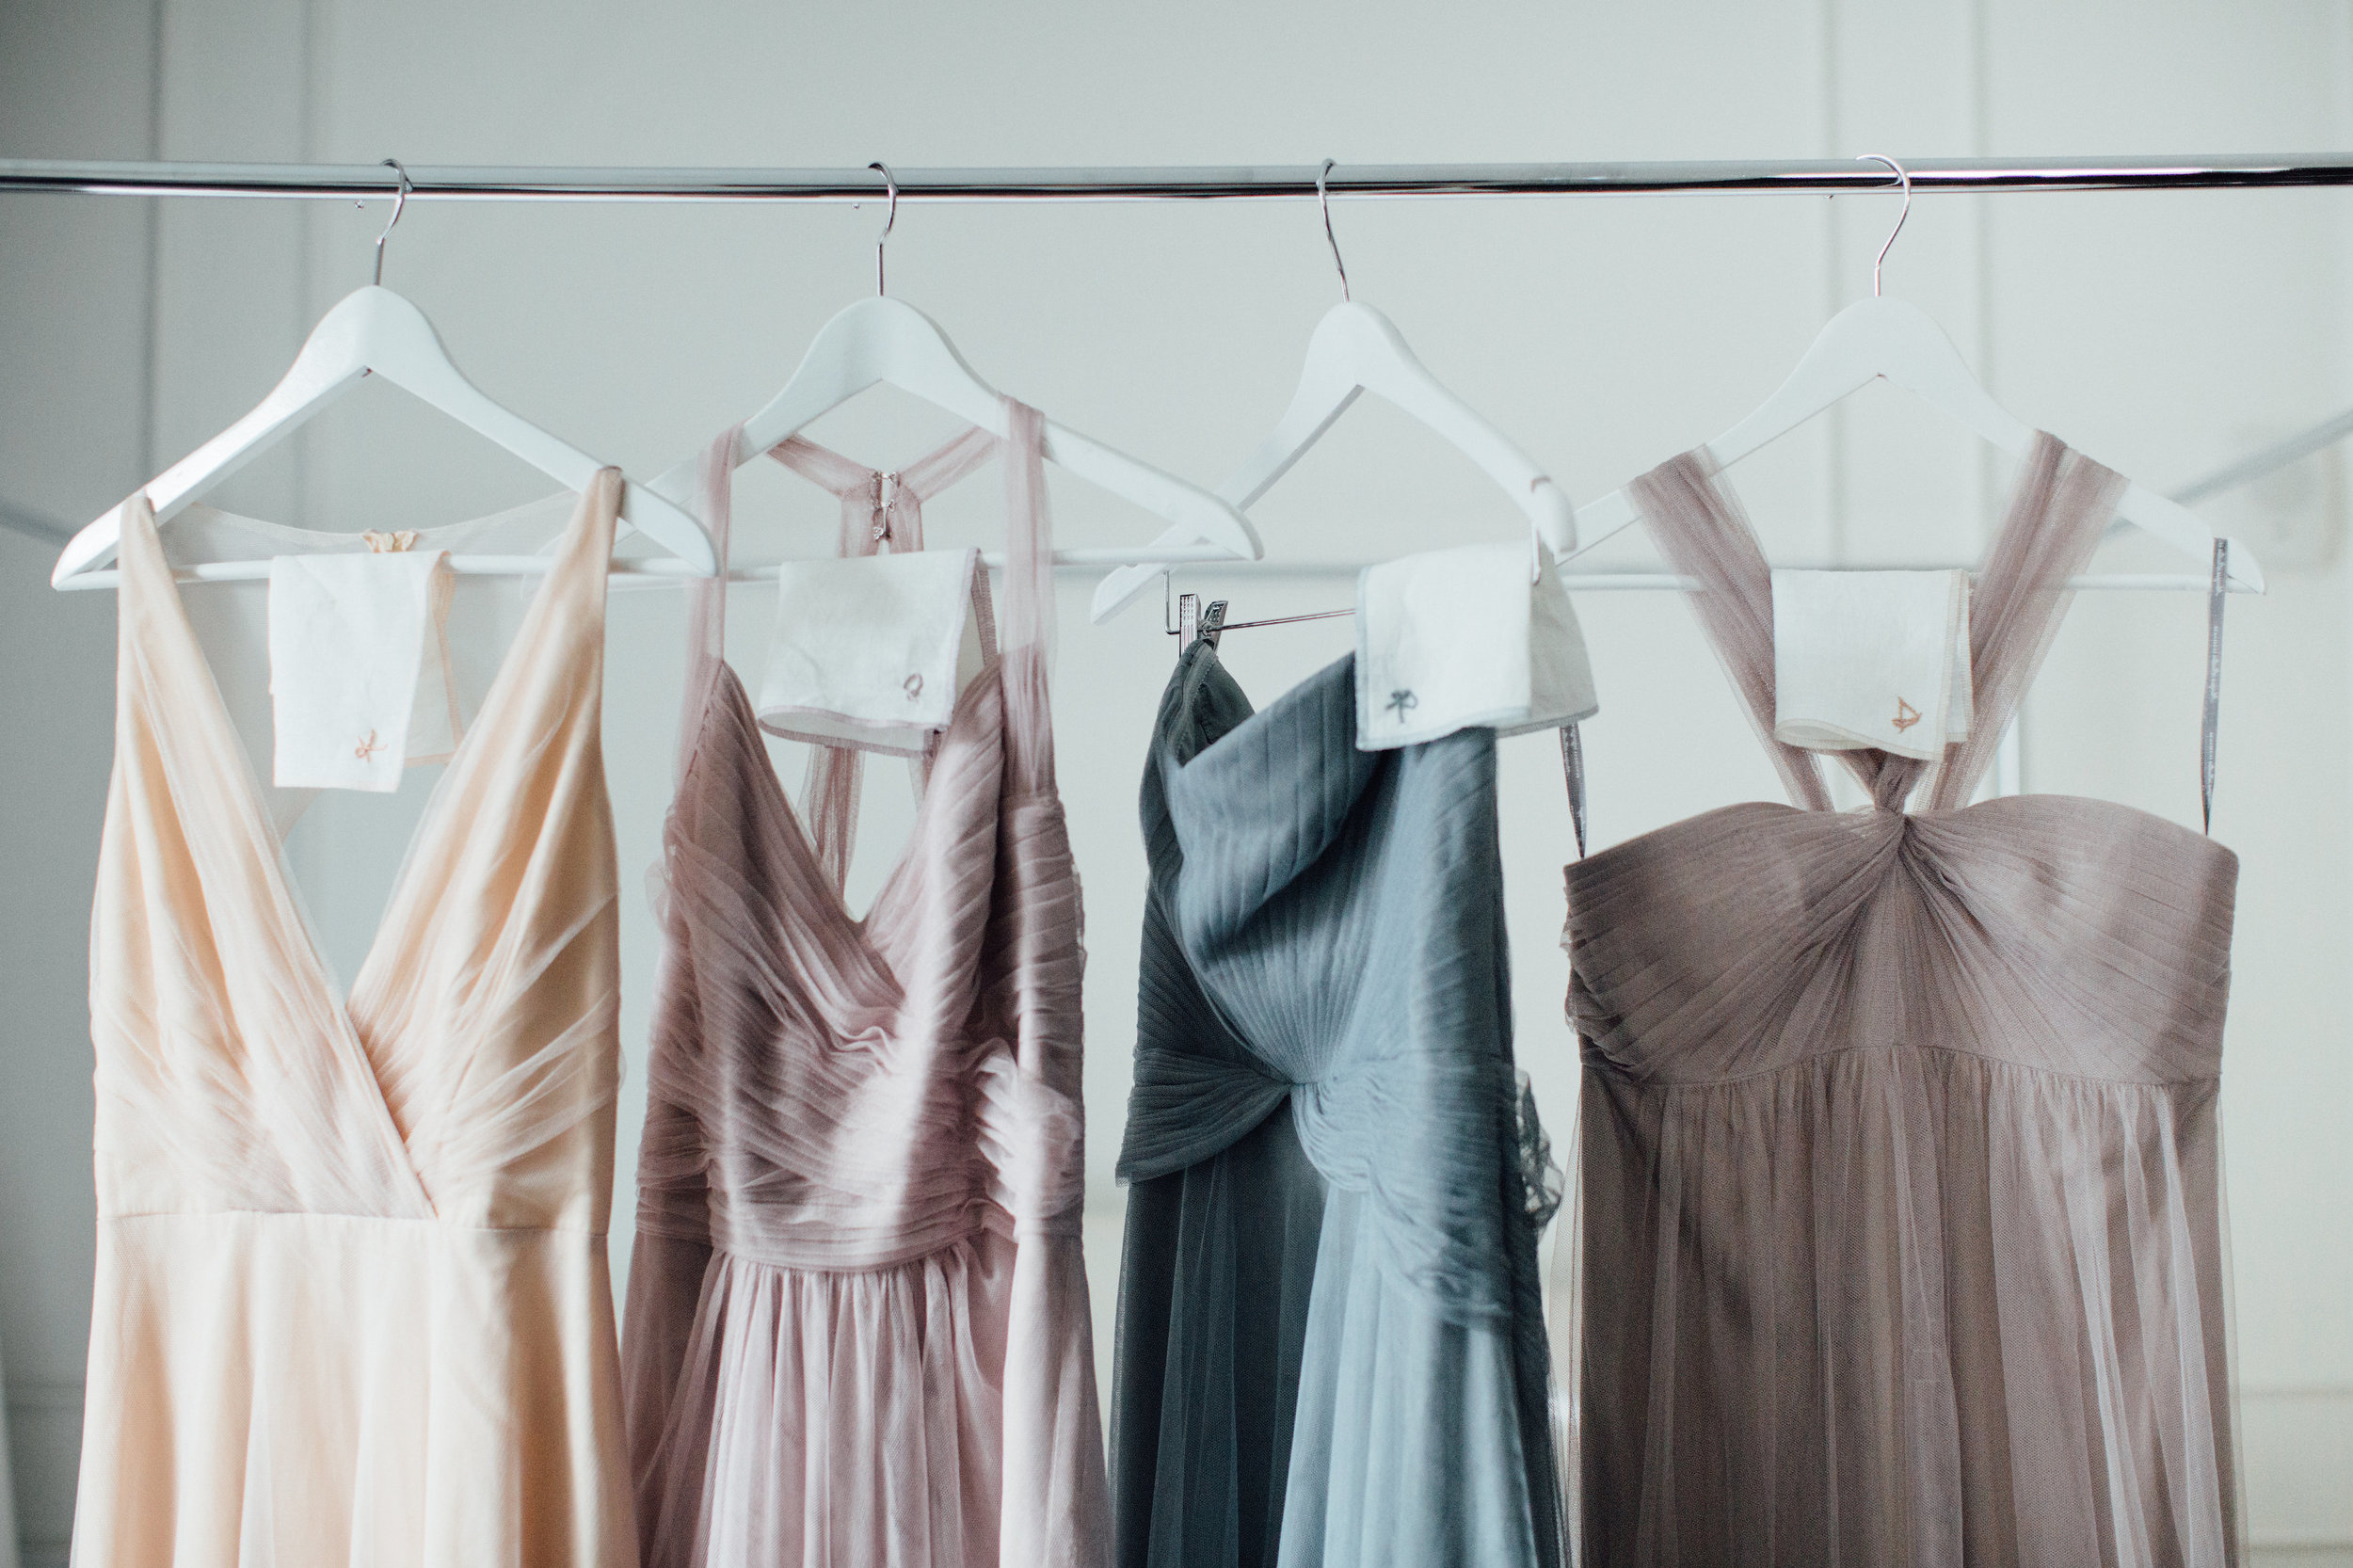 Photo by Tiffany Von for The Everyday Co. & Whim Events